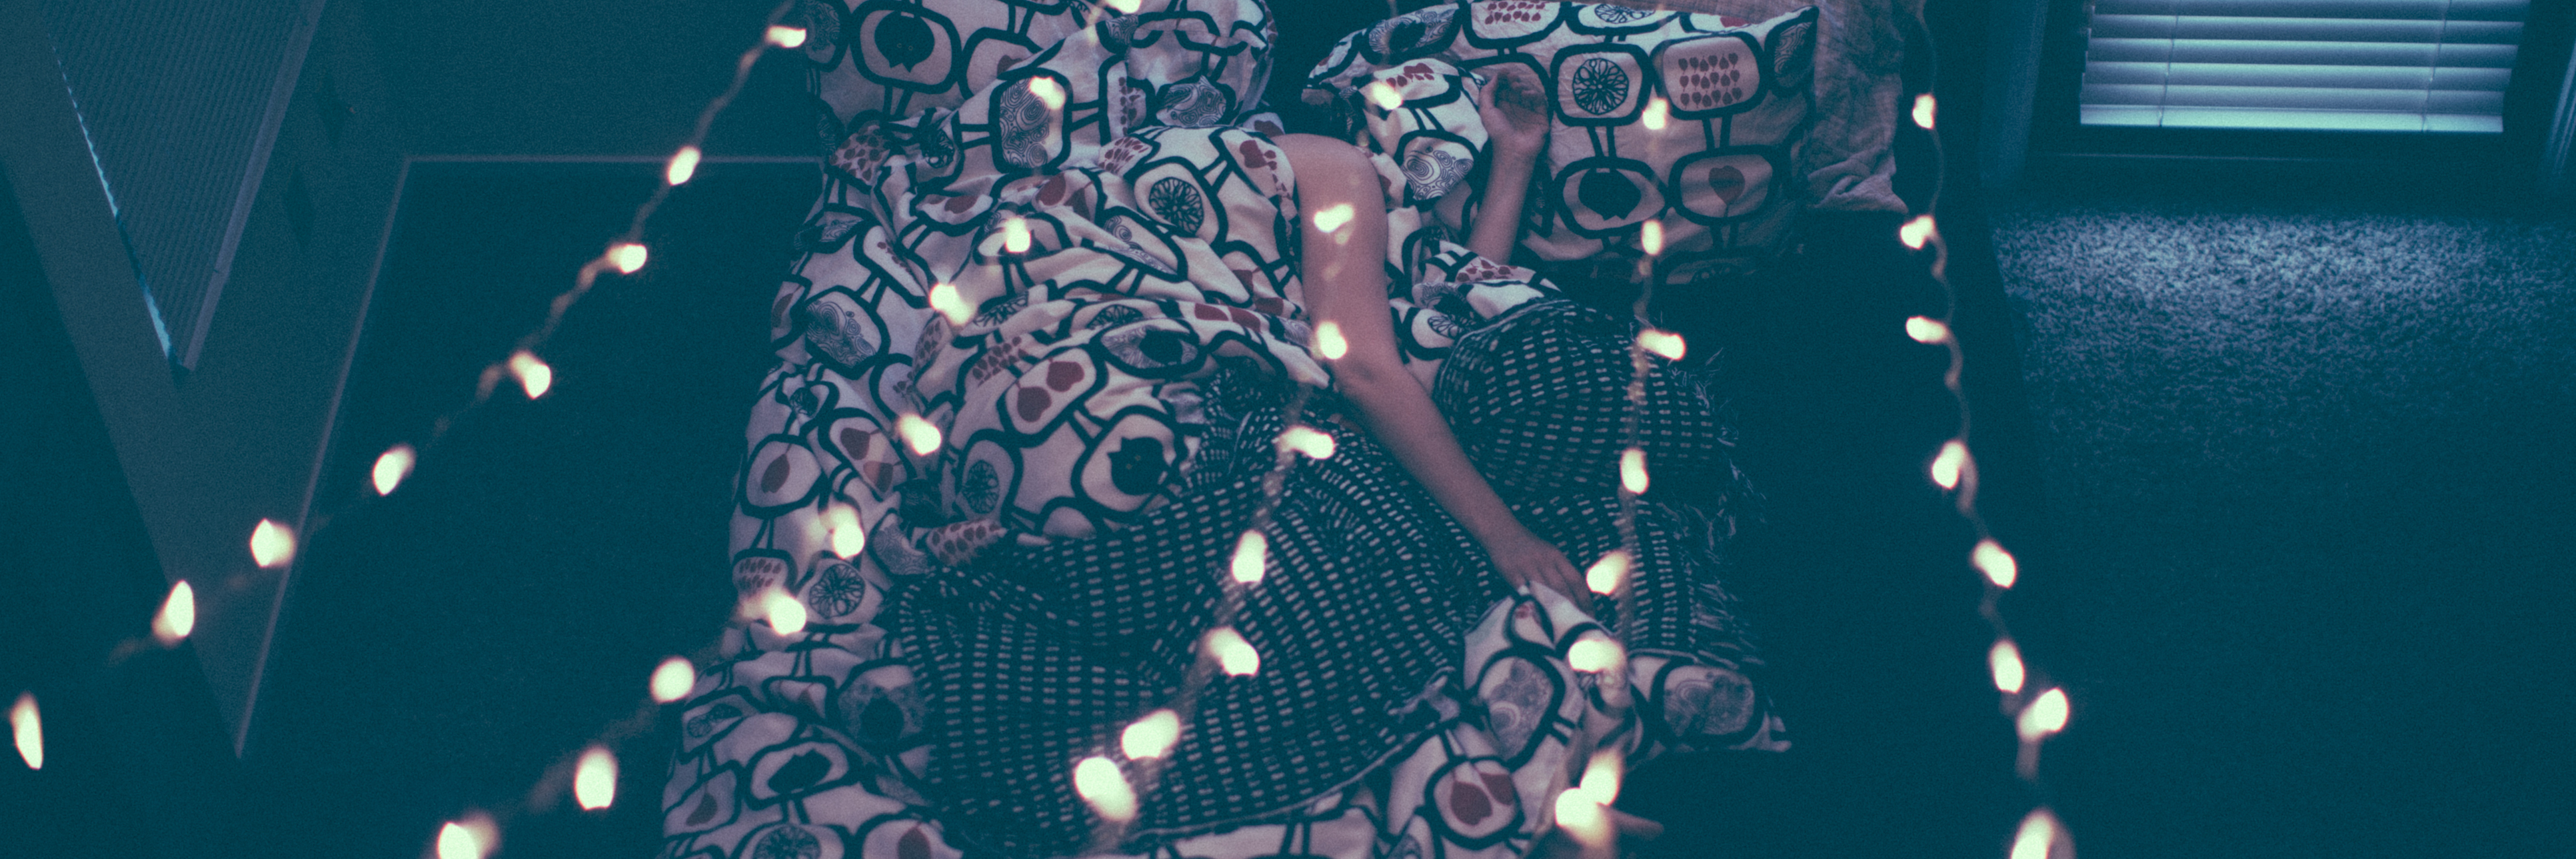 overhead photo of woman lying in bed with lights above her covered with duvet